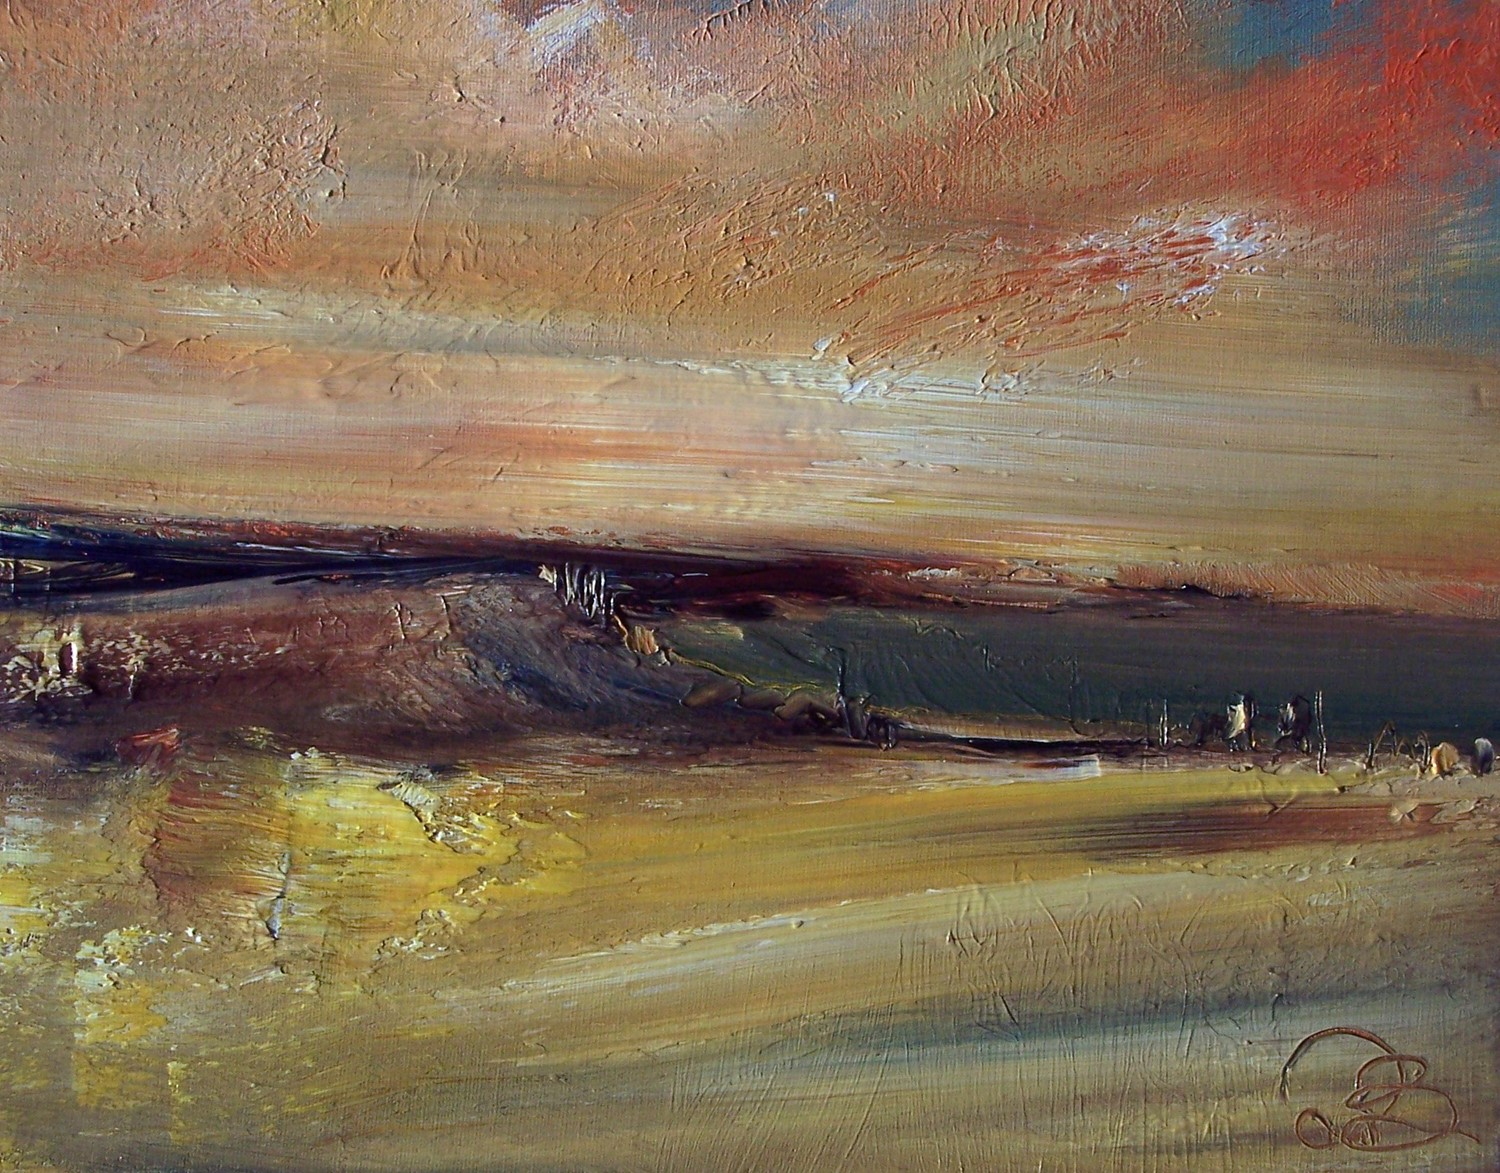 'Fading View' by artist Rosanne Barr